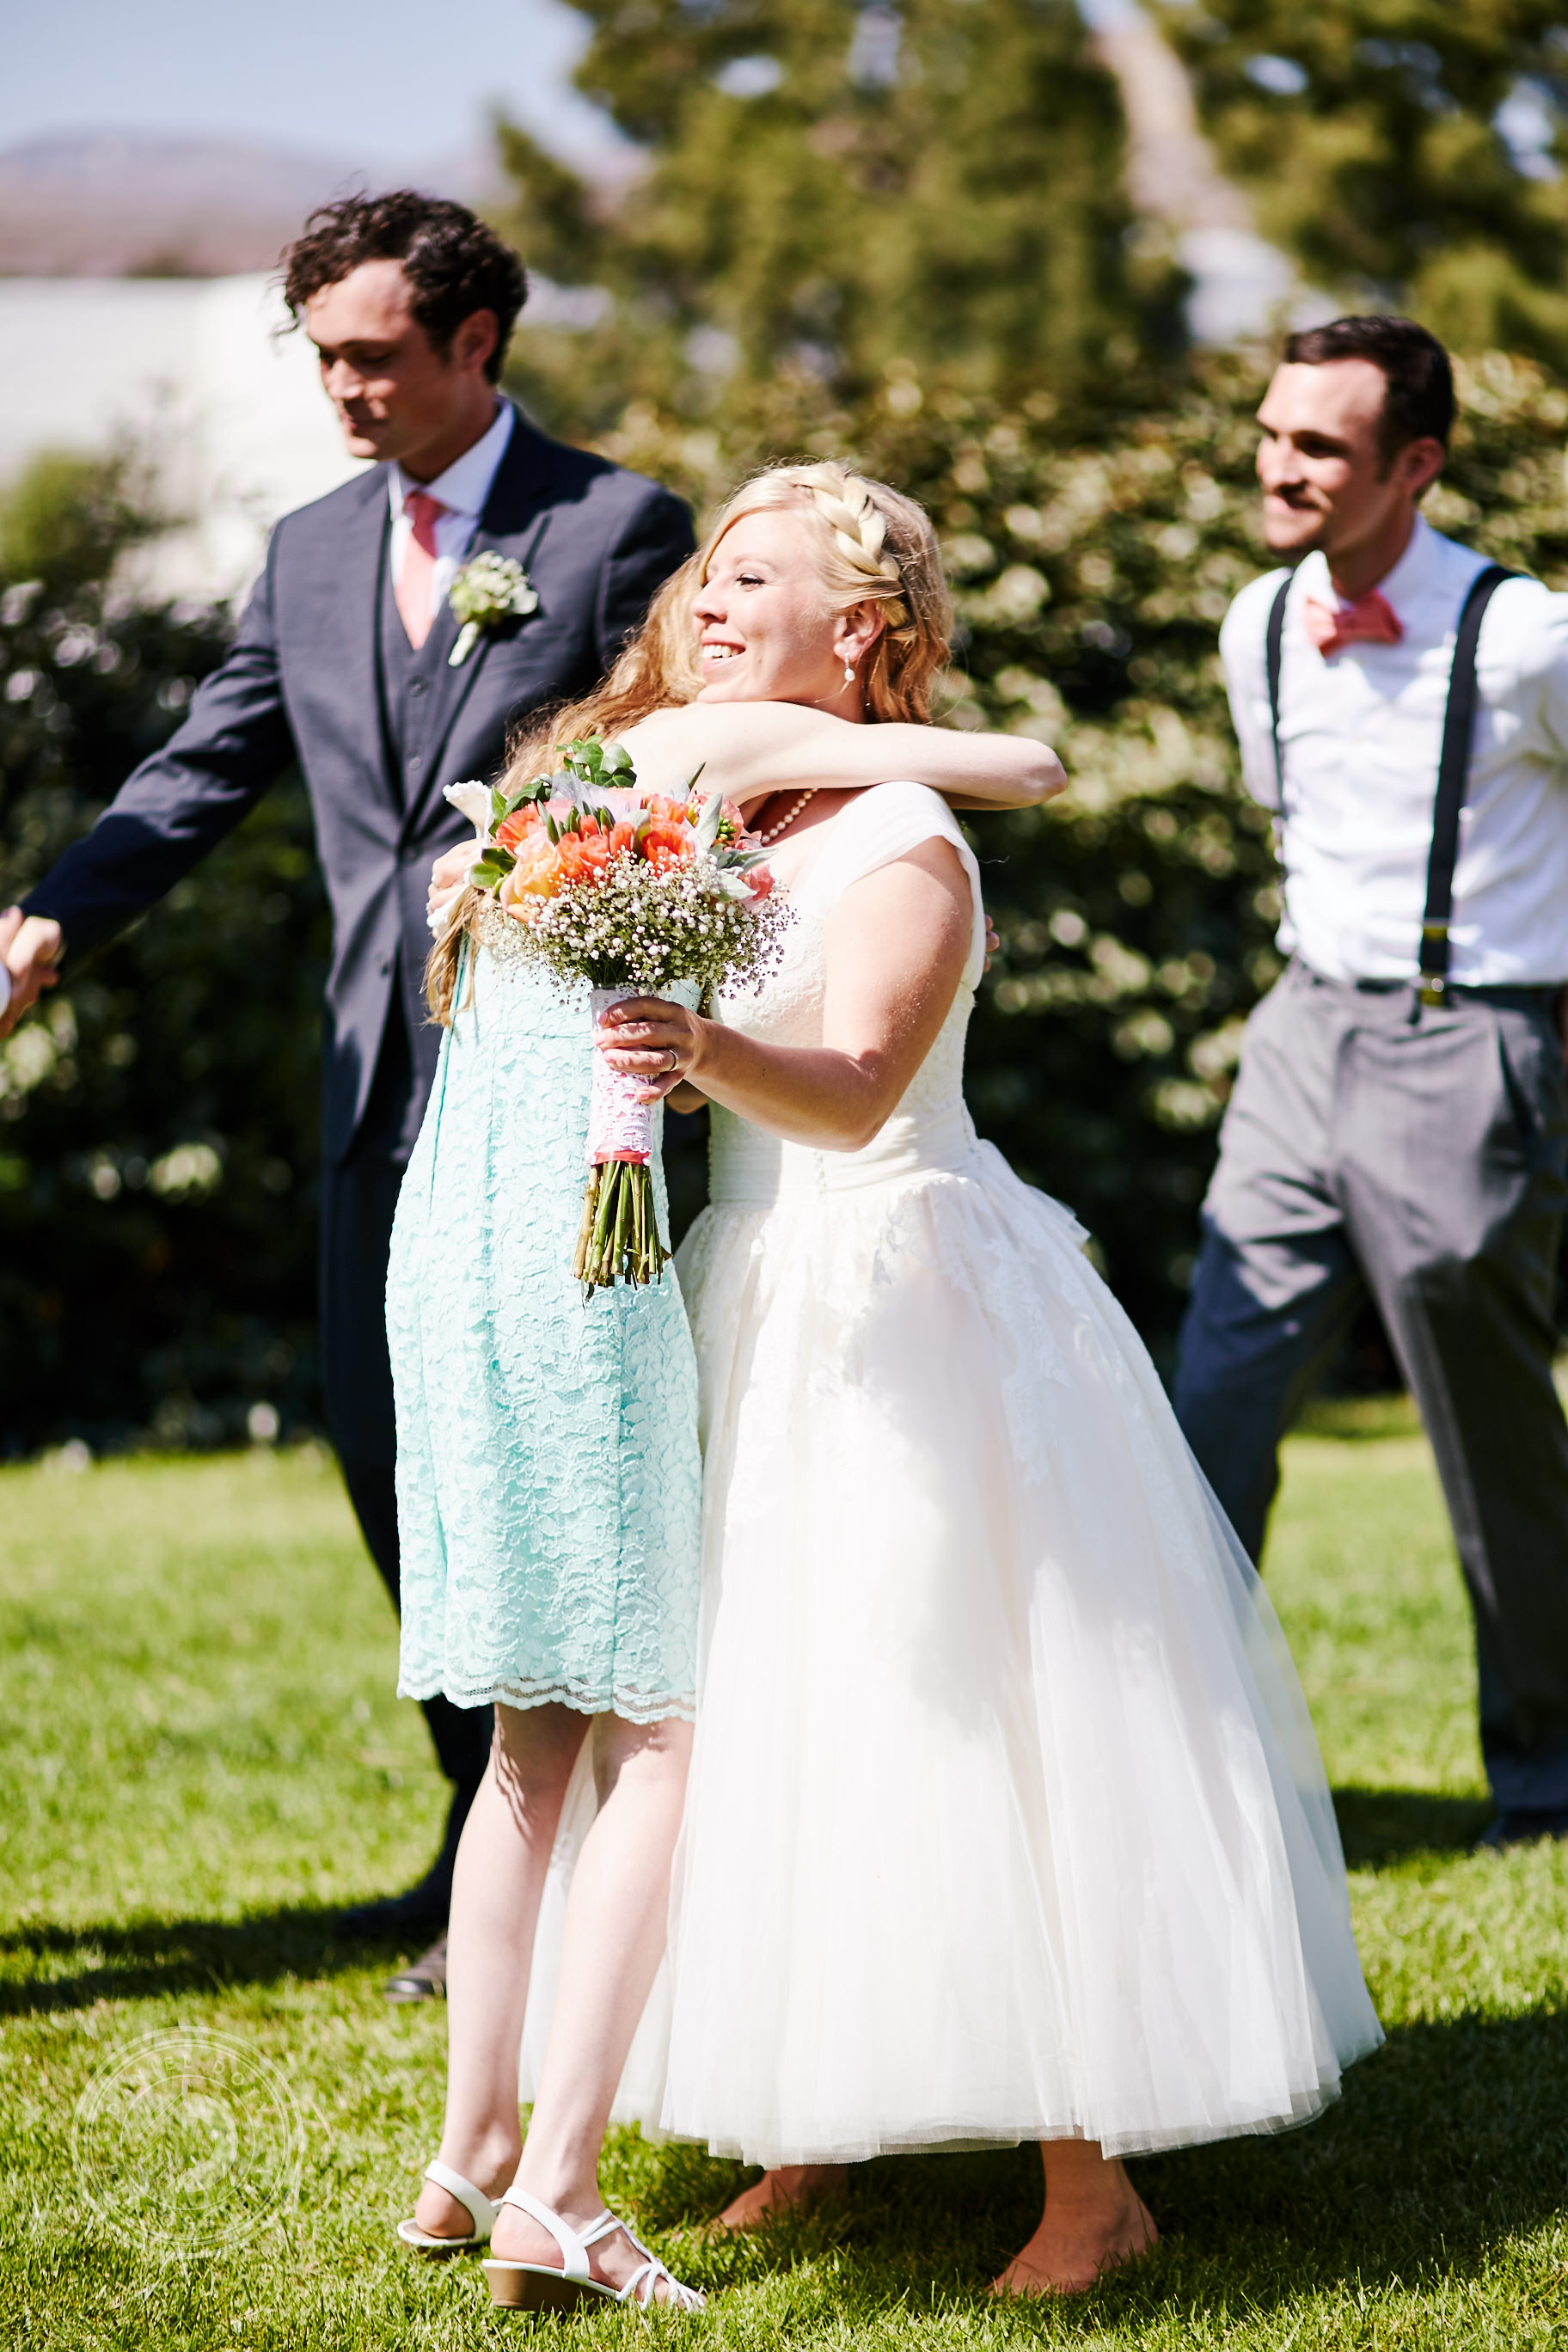 Daniel Doty Photography Erin Colin SoCal Wedding Photographer Strathearn 149.jpg